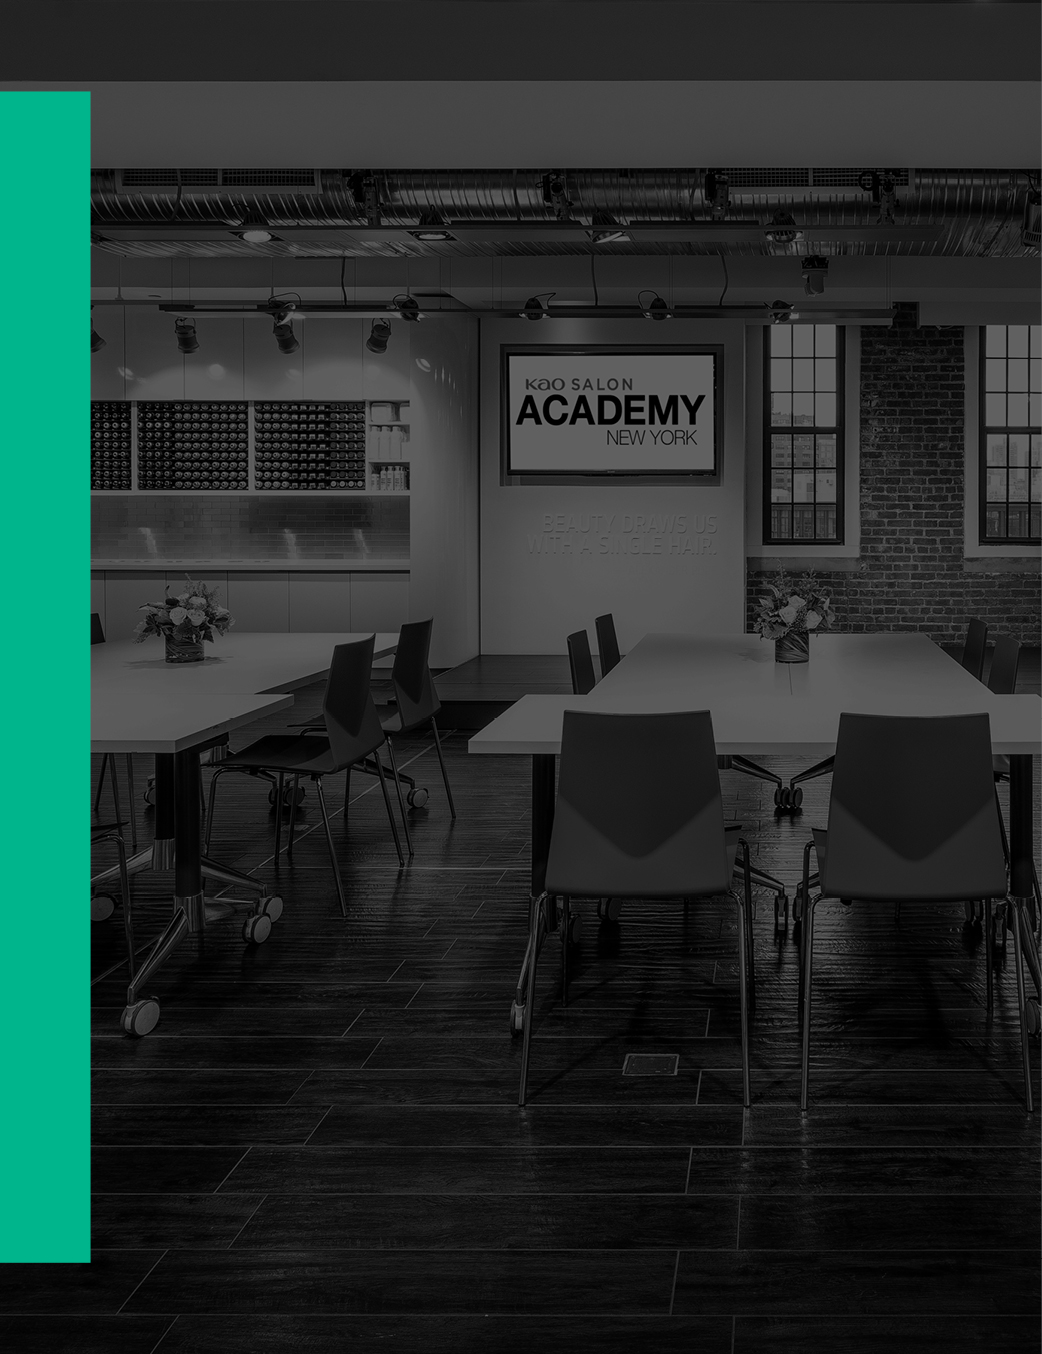 About the NY Academy